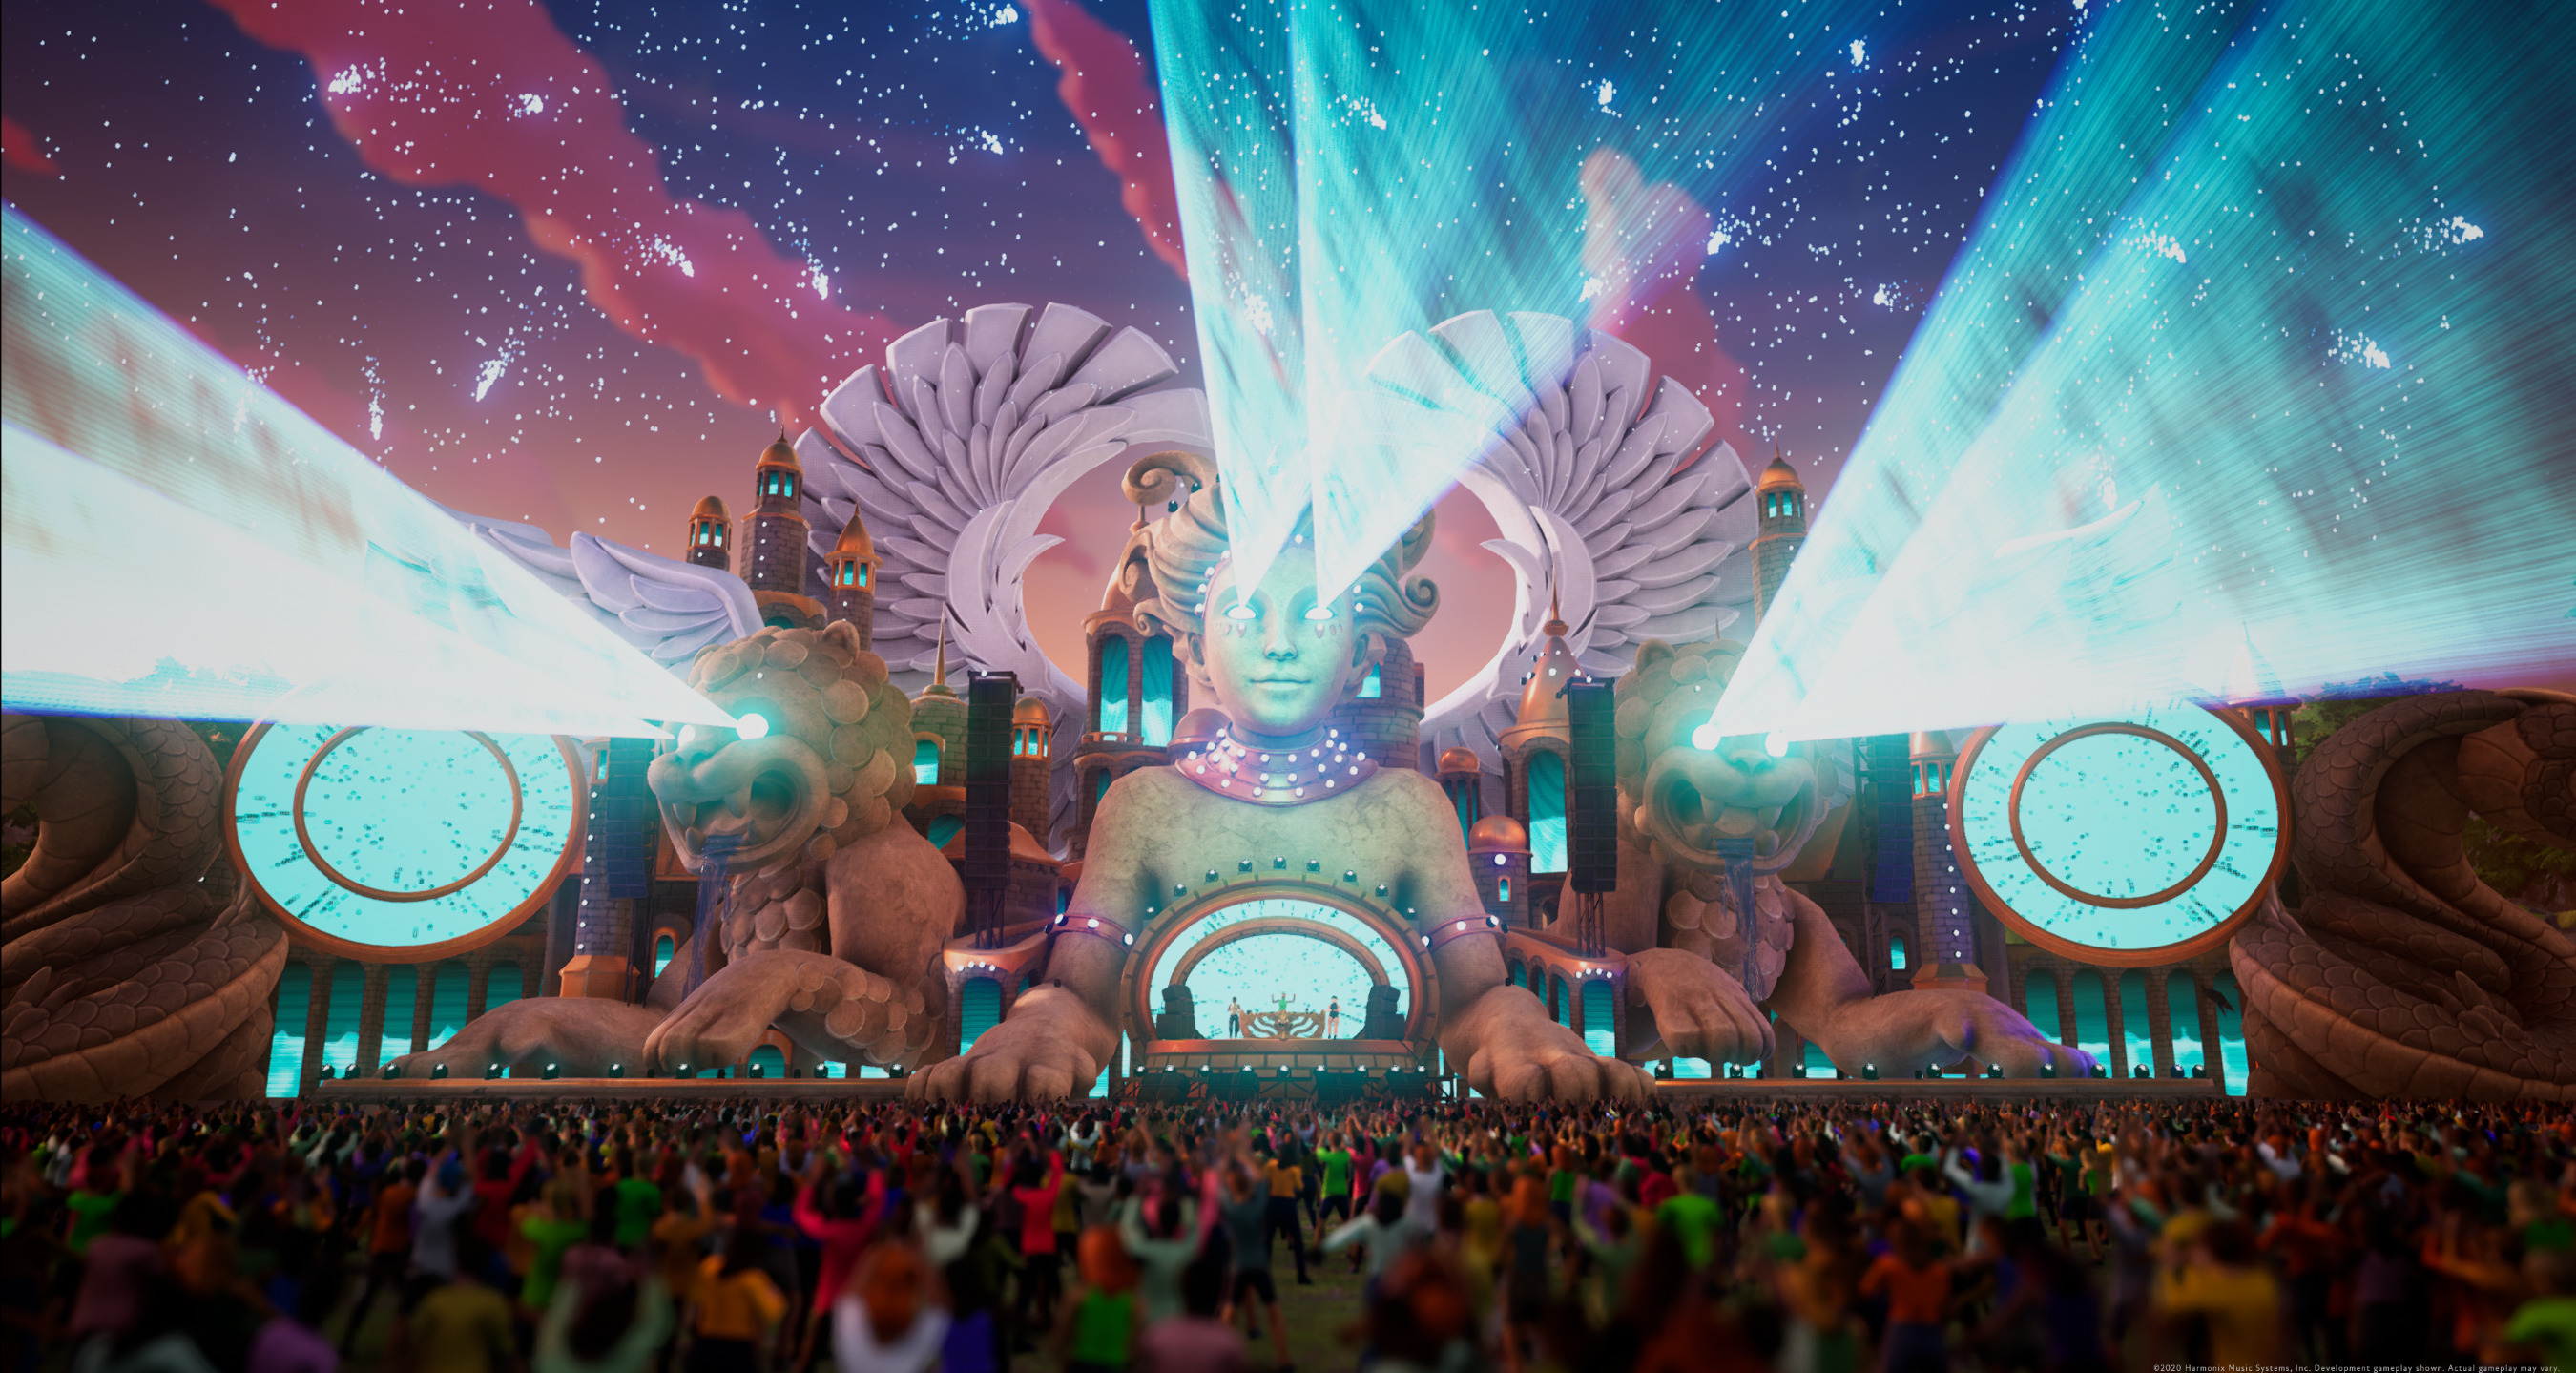 Live the fantasy of being a headlining DJ in front of a massive crowd – learn the ropes in the solo campaign, then show the world what you've got in freestyle and multiplayer modes.